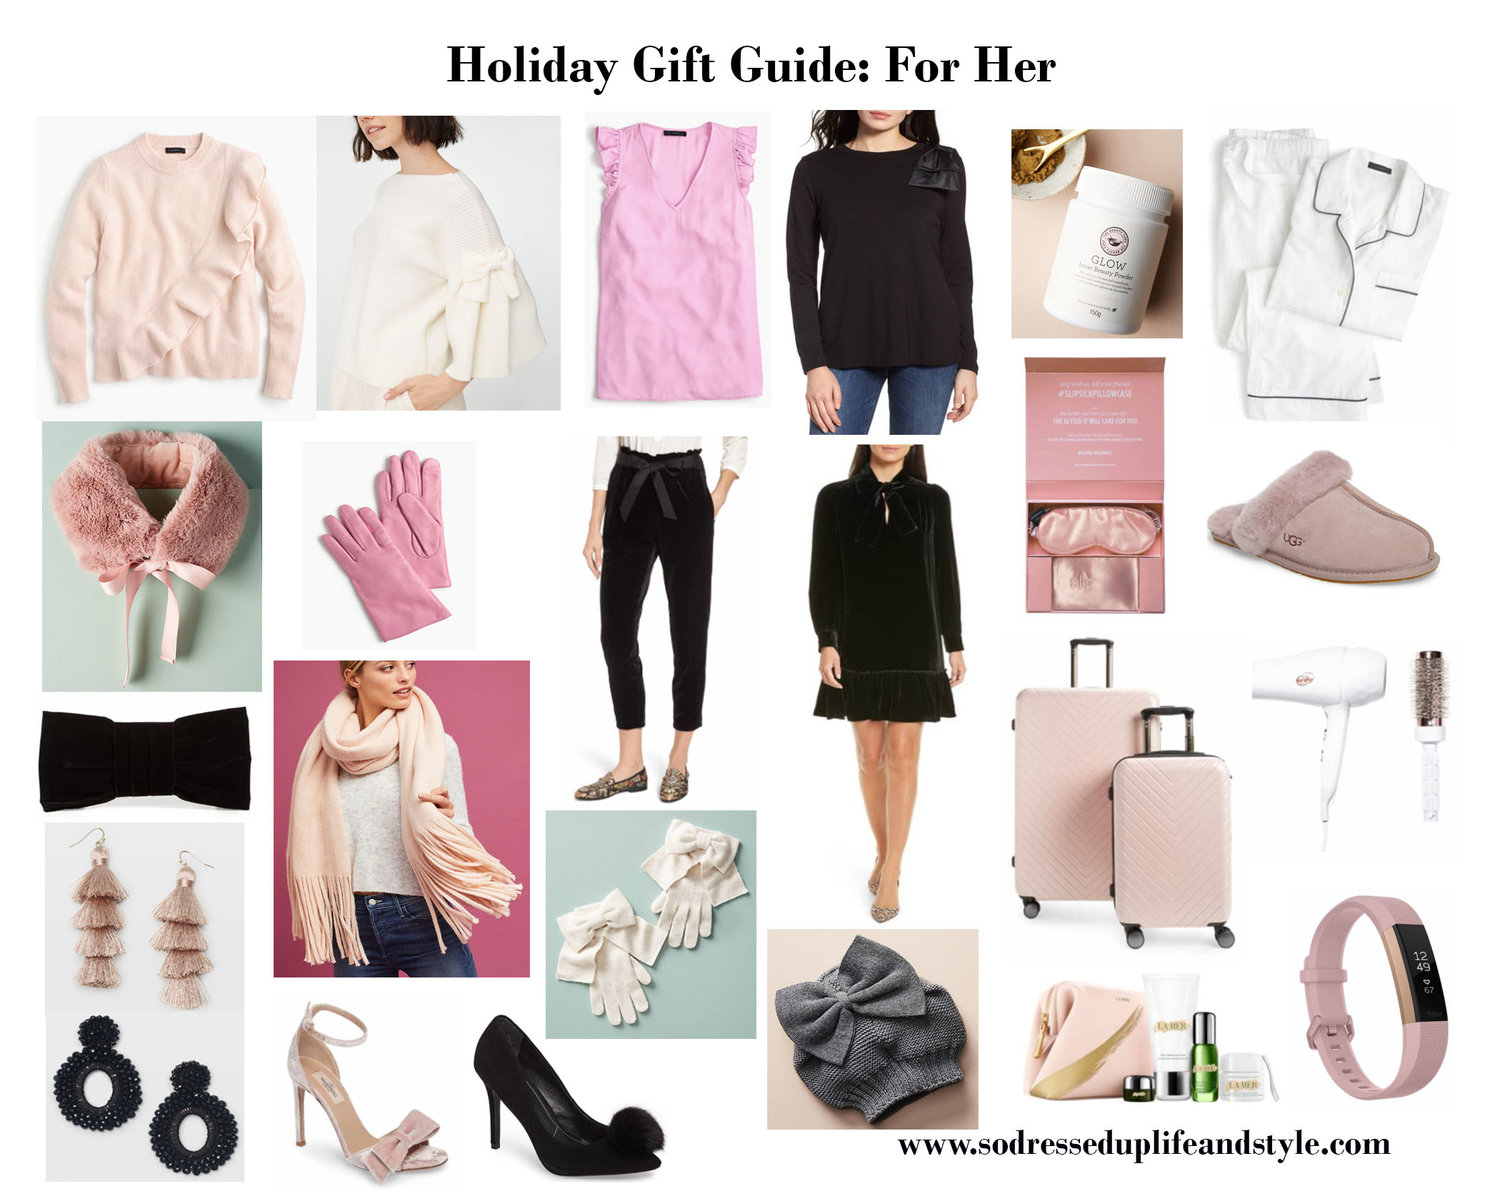 Holiday+Gift+Guide+HER.jpg